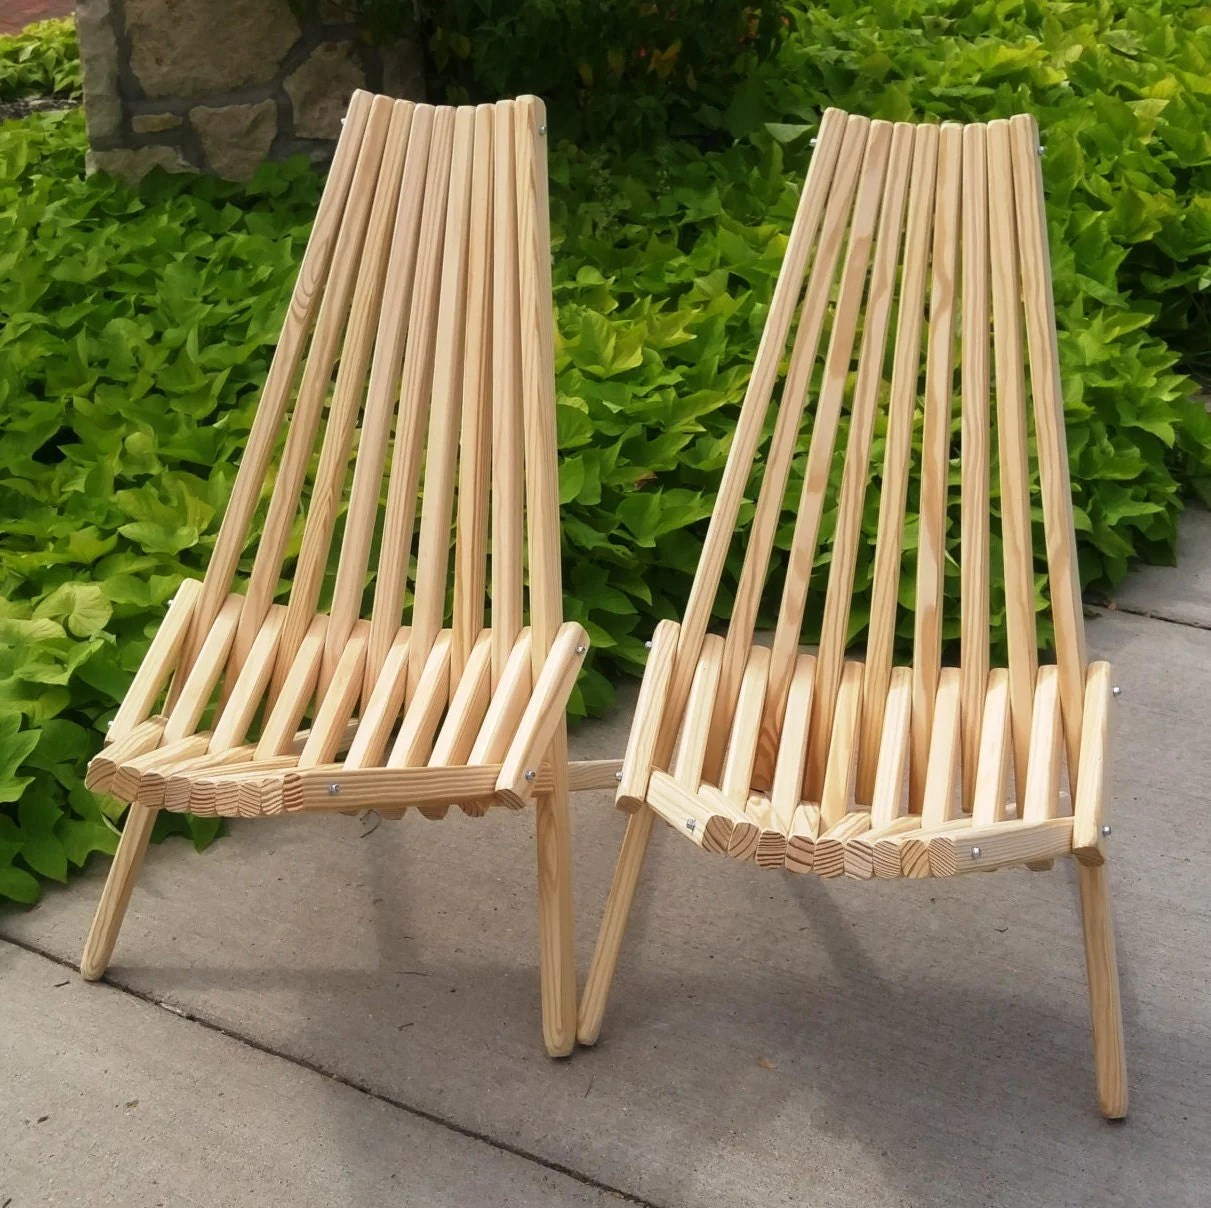 folding kentucky chair small outdoor chairs patio furniture unfinished stick adirondack